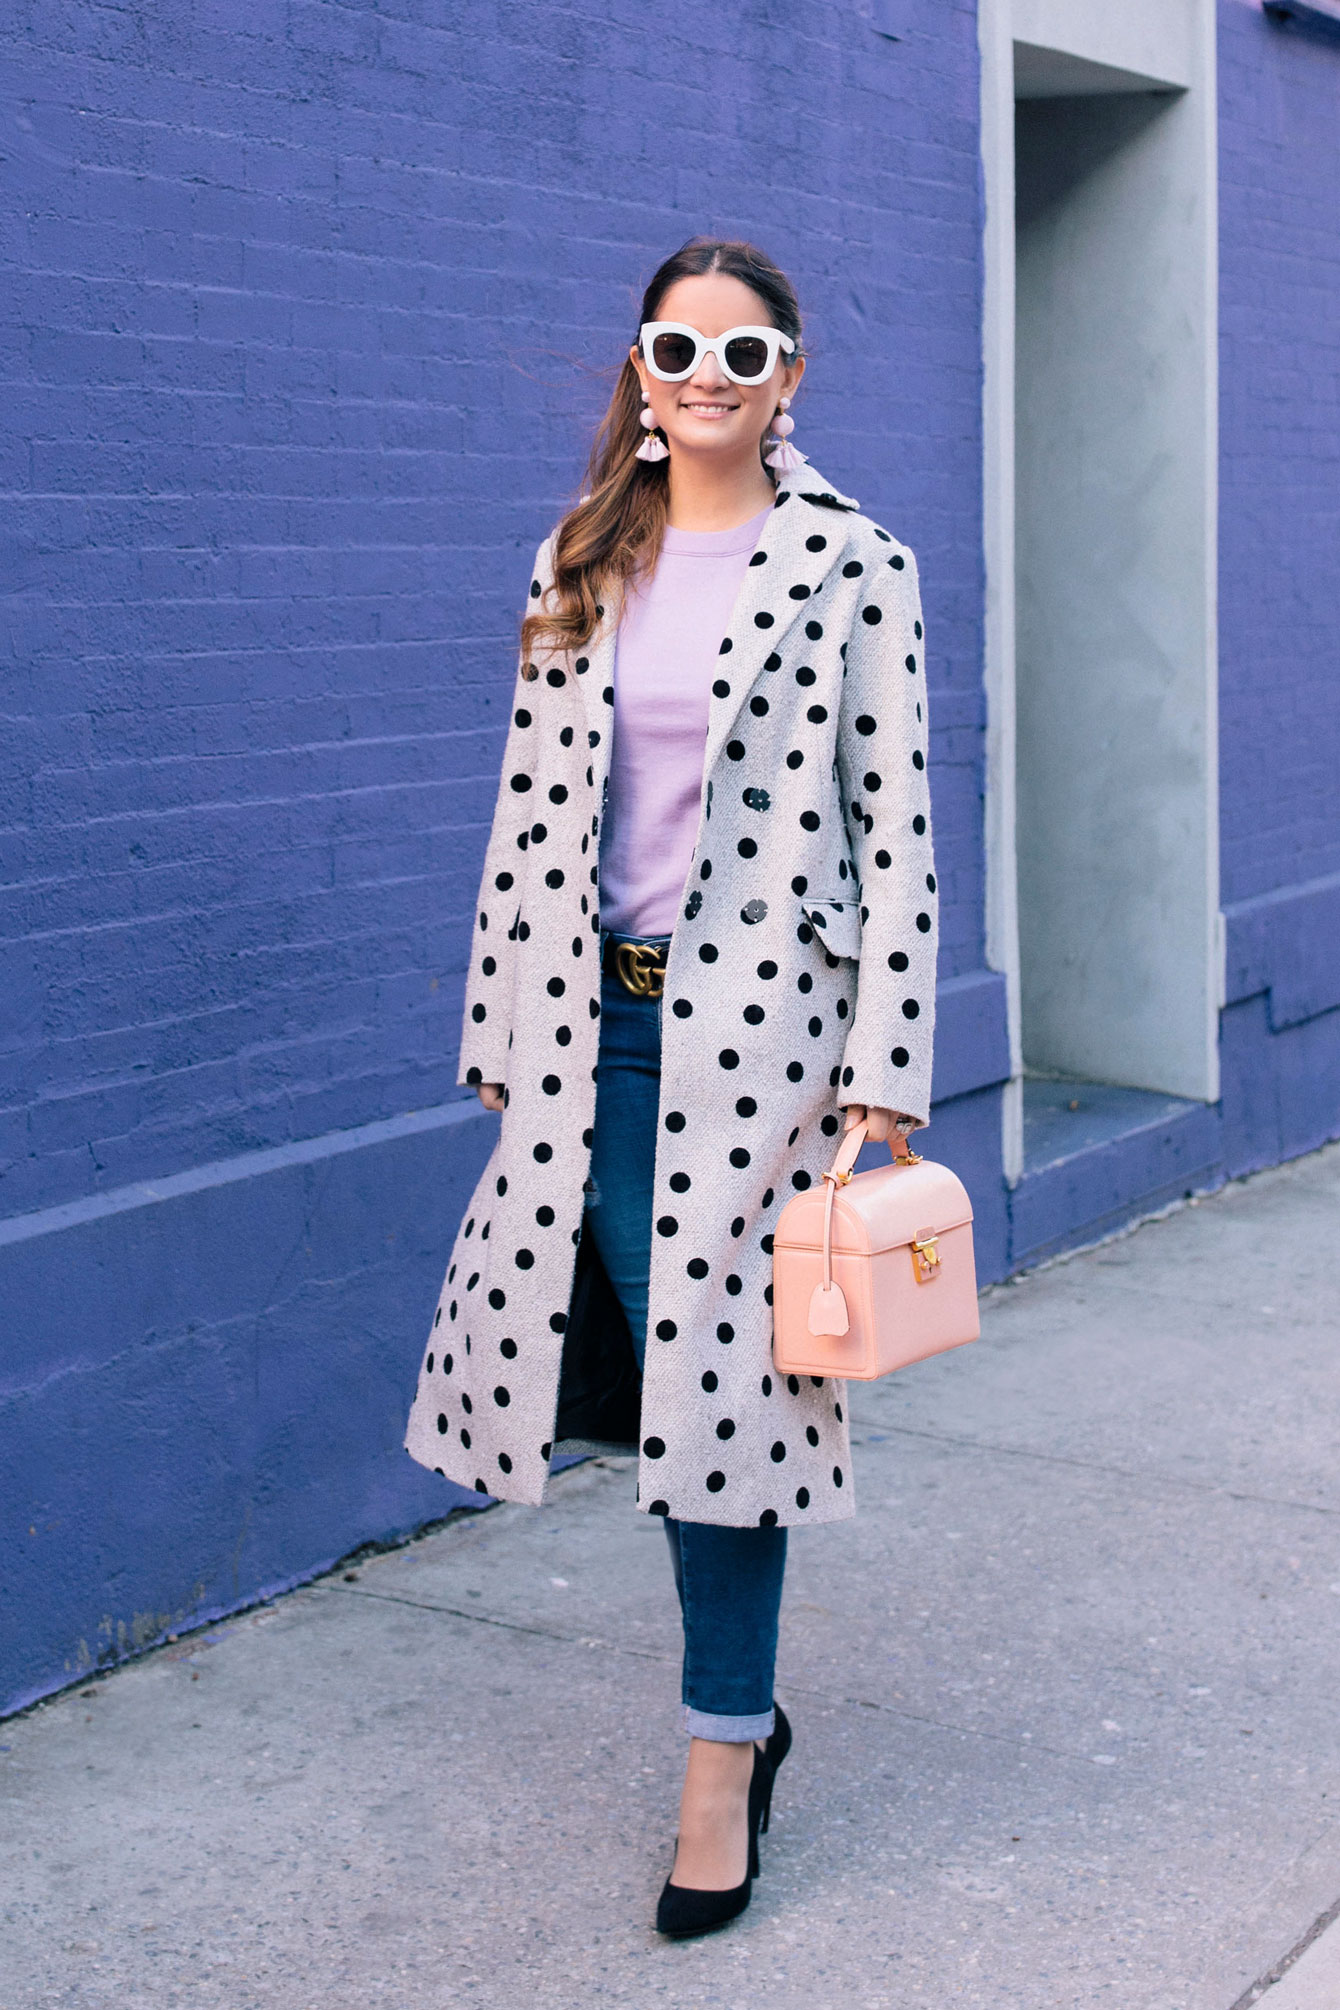 ASOS Polka Dot Coat